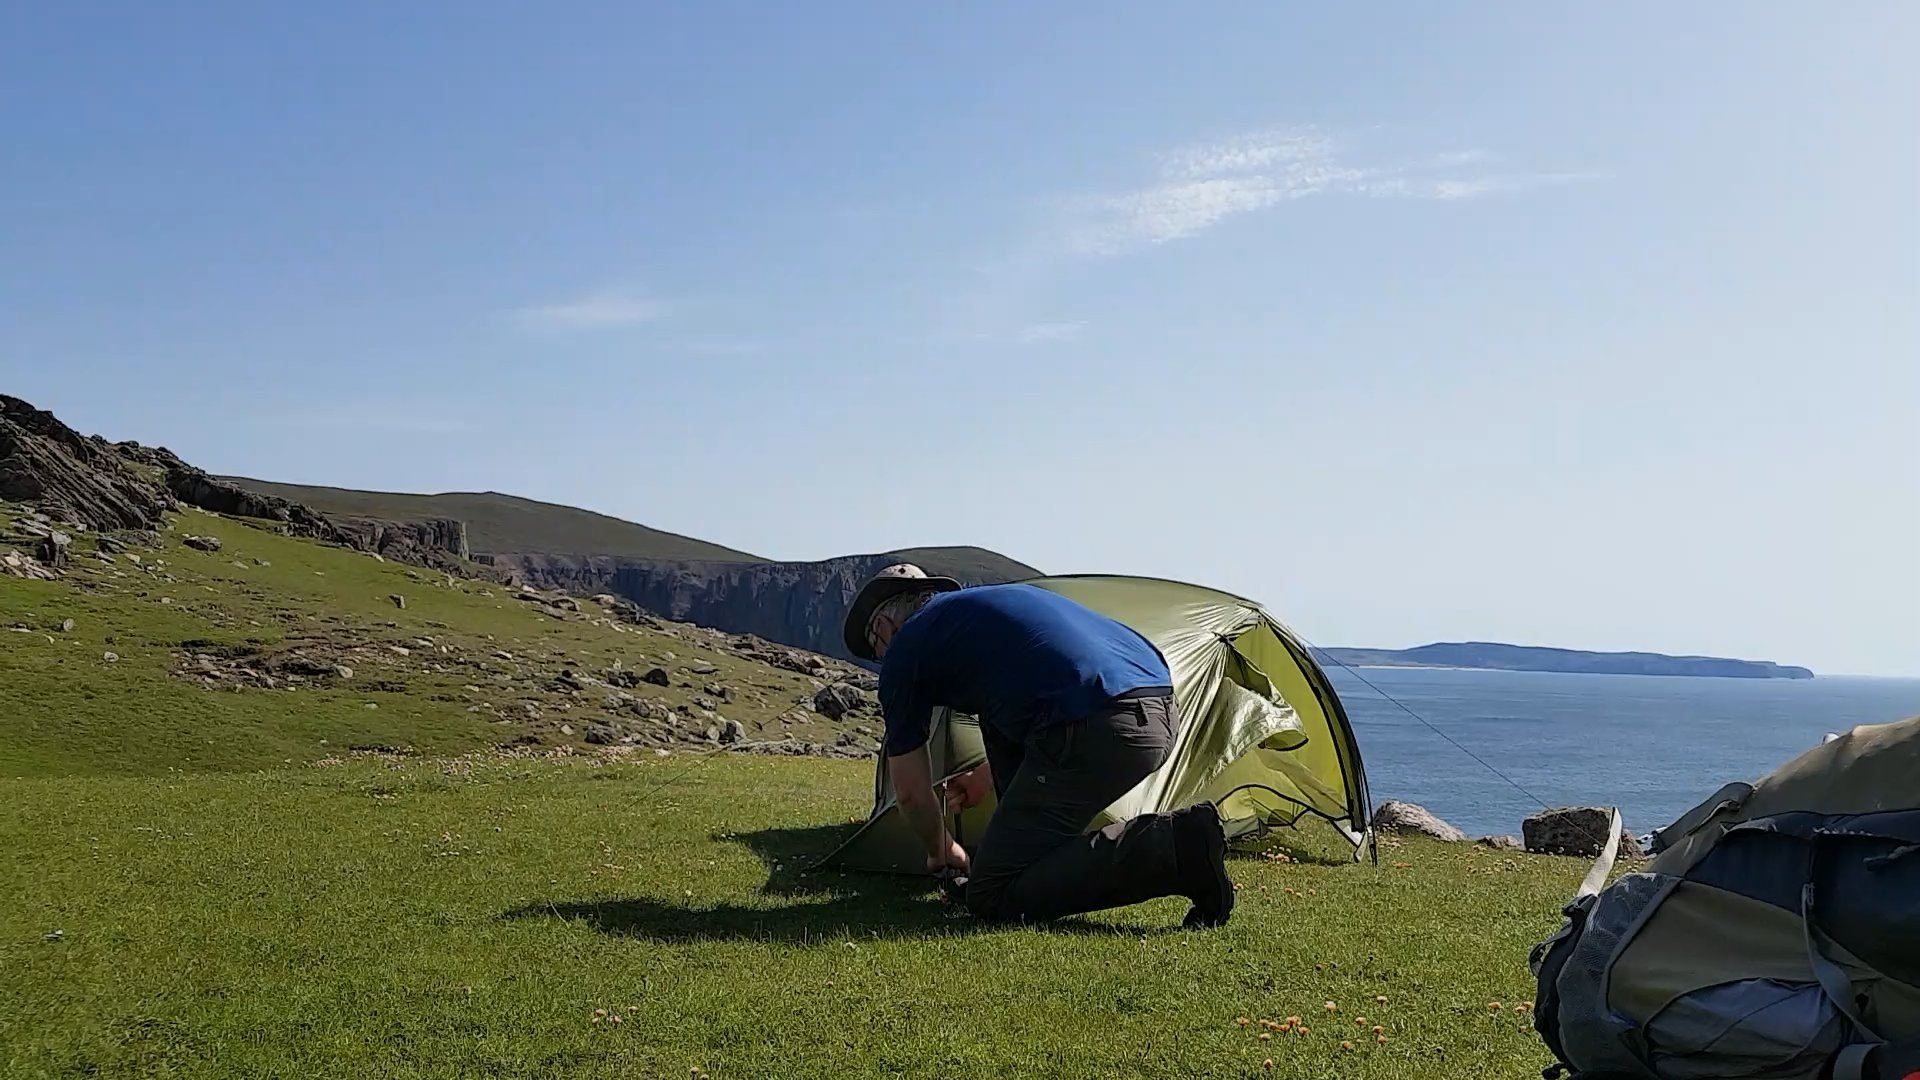 The flat, grassy machair right on the cliffline makes a brilliant pitch for my little tent. Just south of Cape Wrath in NW Scotland.